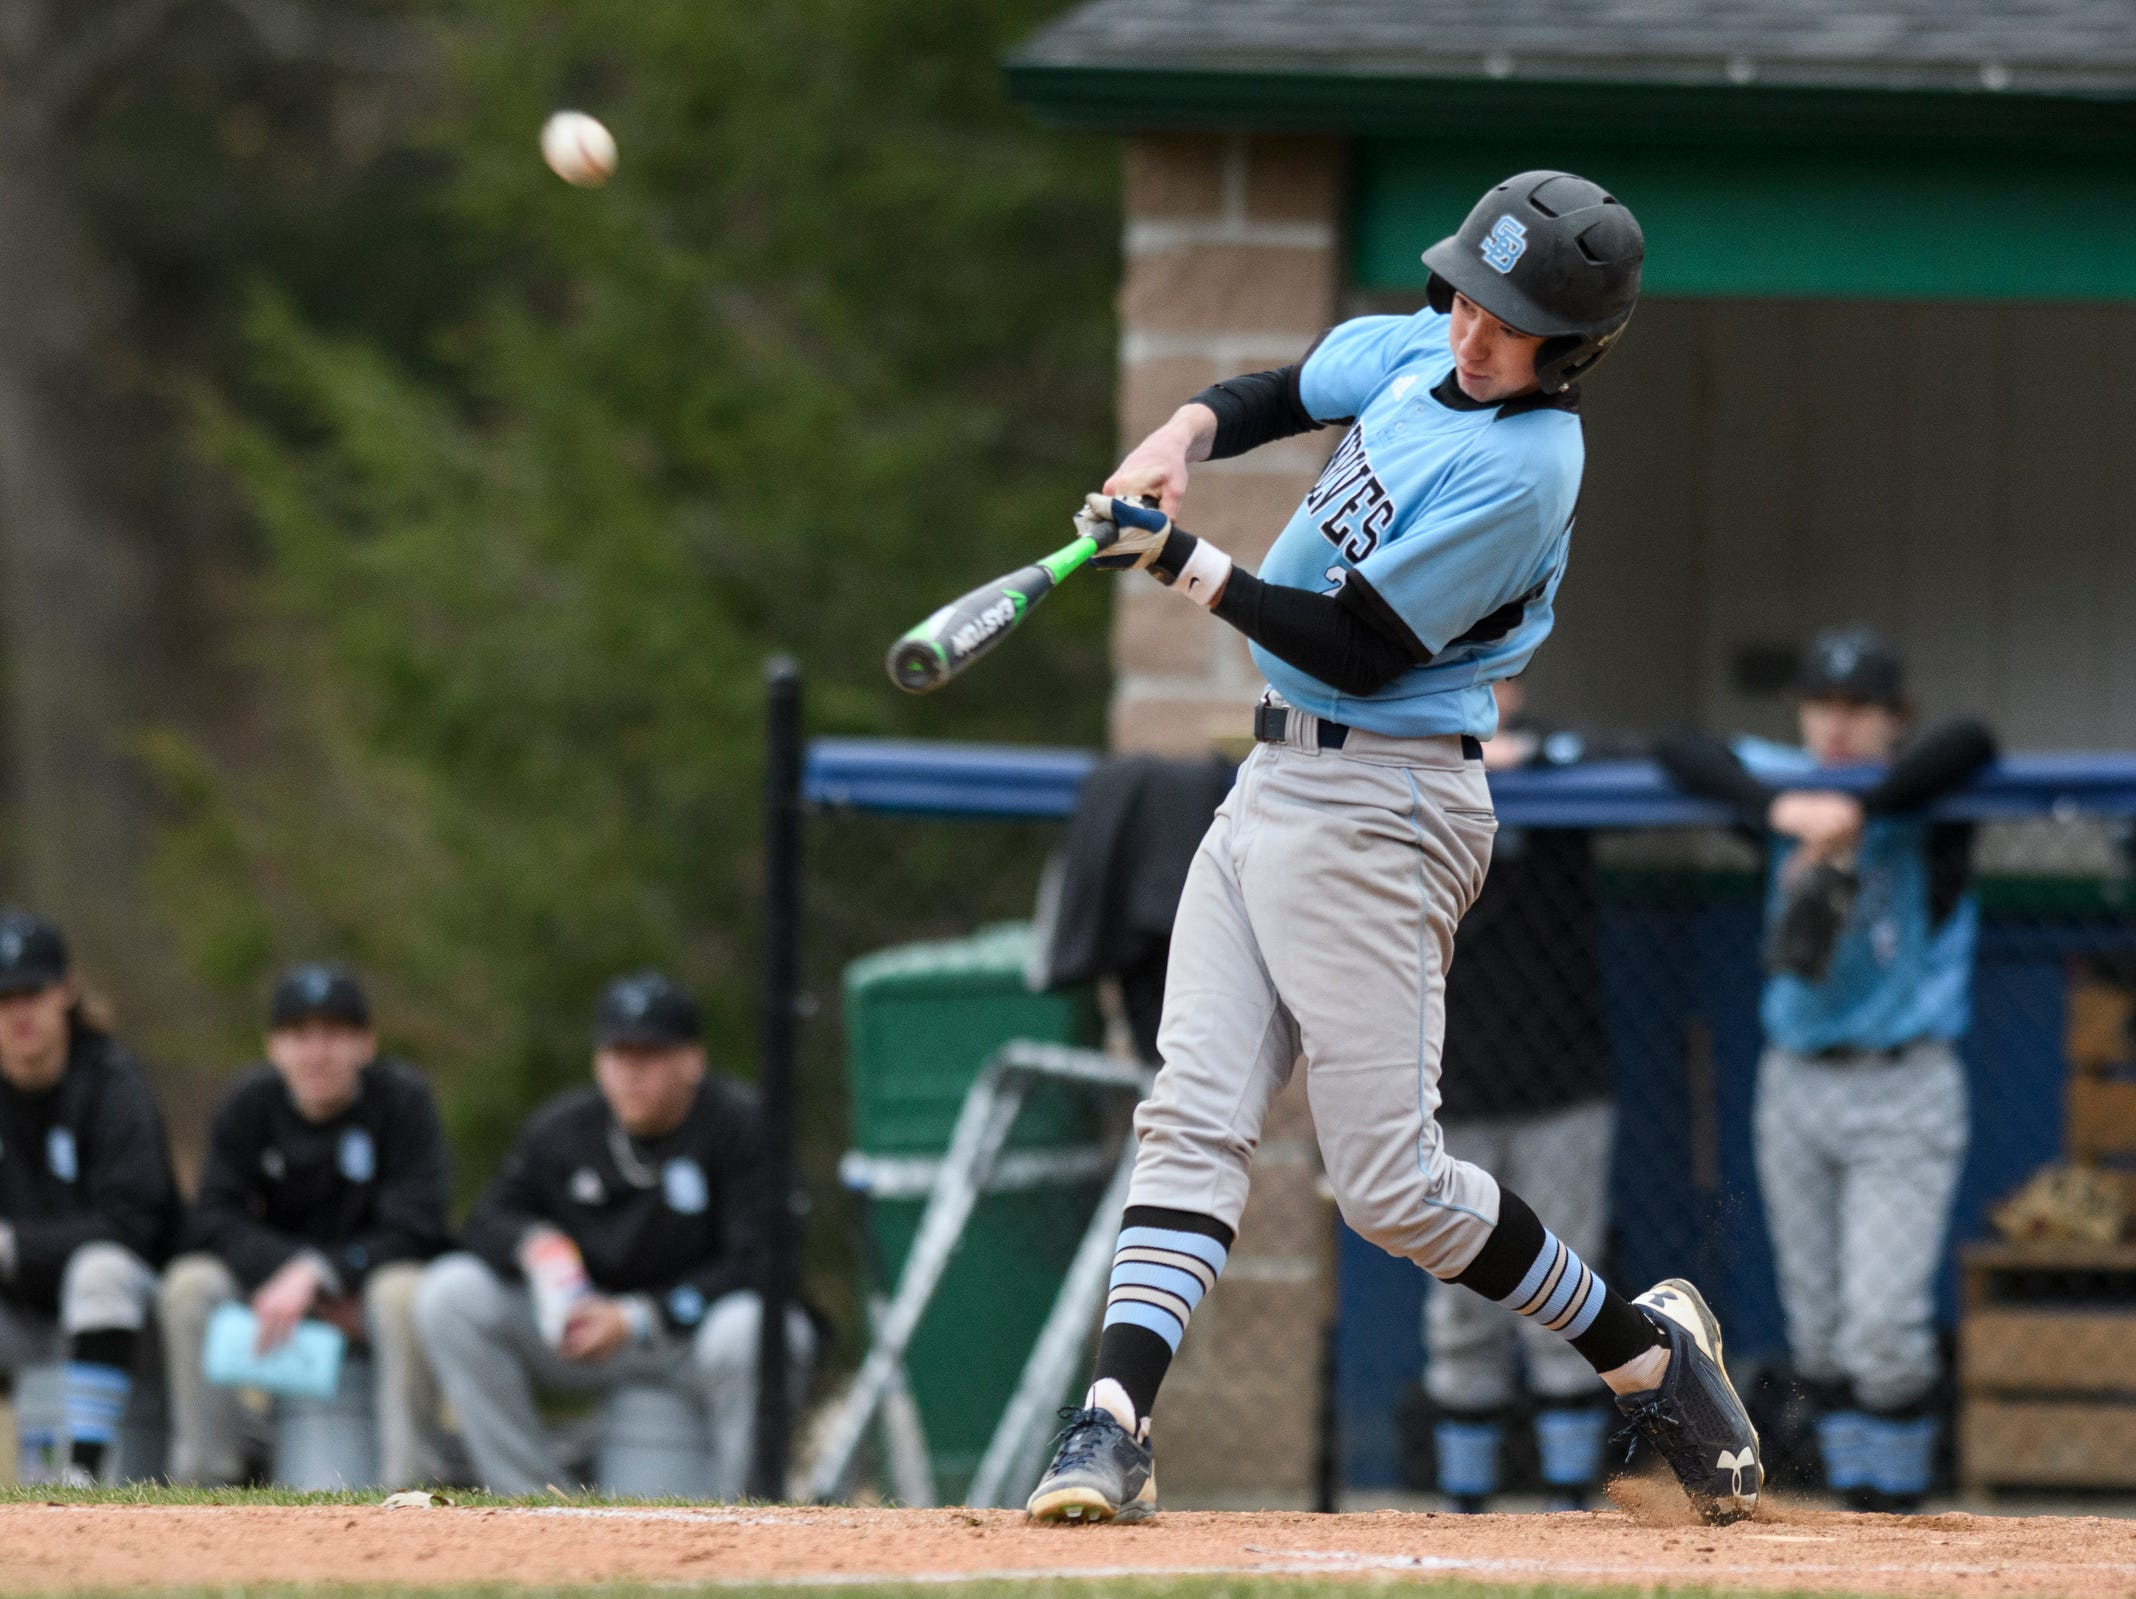 South Burlington's Nolan Antonicci (2) hits the ball during the boys baseball game between the South Burlington Wolves and the Colchester Lakers at Colchester high school on Thursday afternoon April 18, 2019 in Colchester, Vermont.